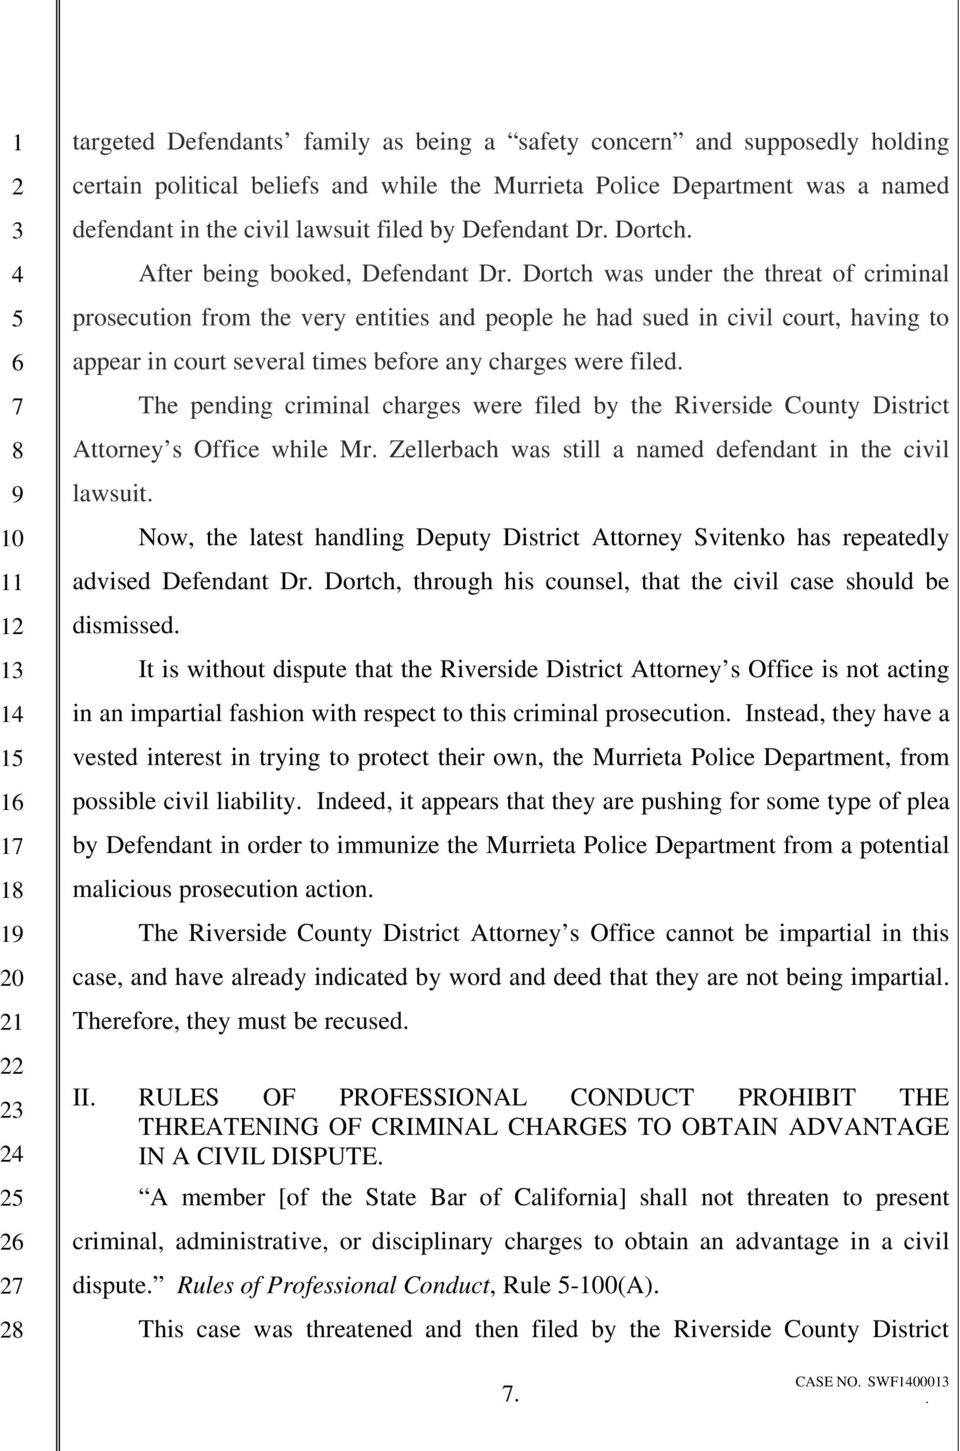 several times before any charges were filed The pending criminal charges were filed by the Riverside County District Attorney s Office while Mr Zellerbach was still a named defendant in the civil